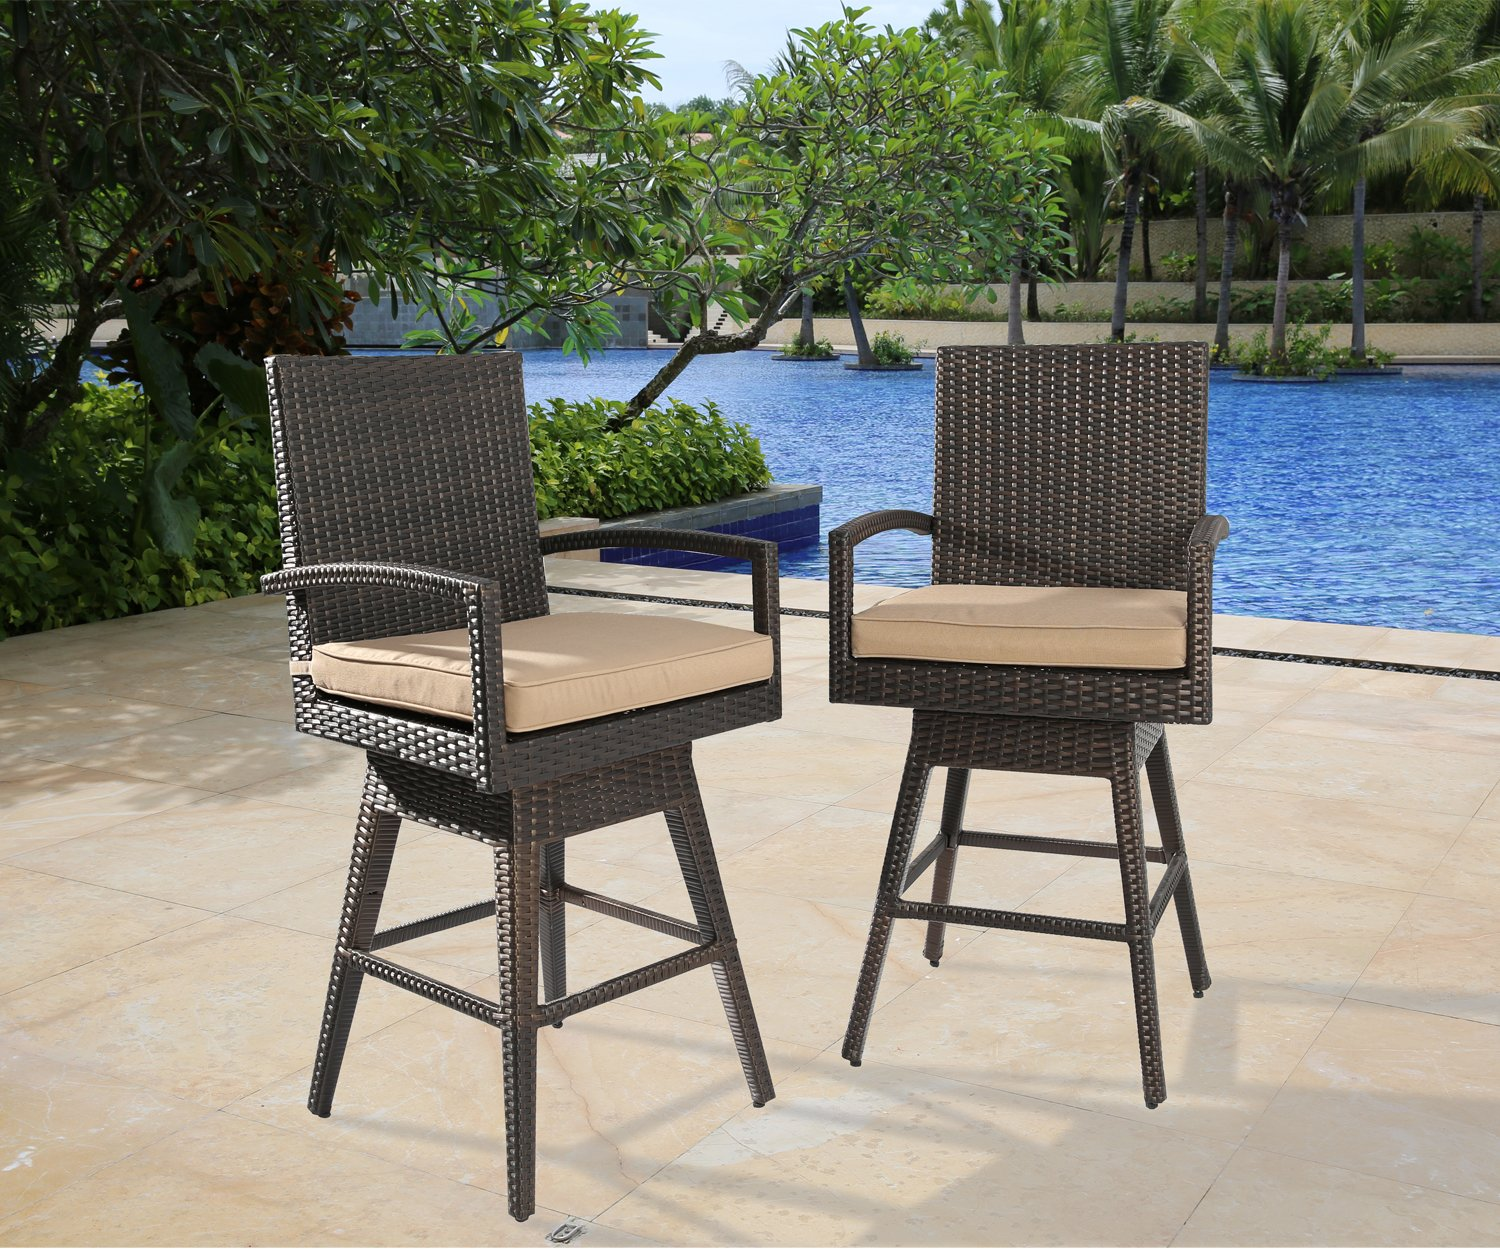 Ulax furniture 2Pack Outdoor Patio Furniture All-Weather Brown Wicker Swivel Bar Stool with Cushion